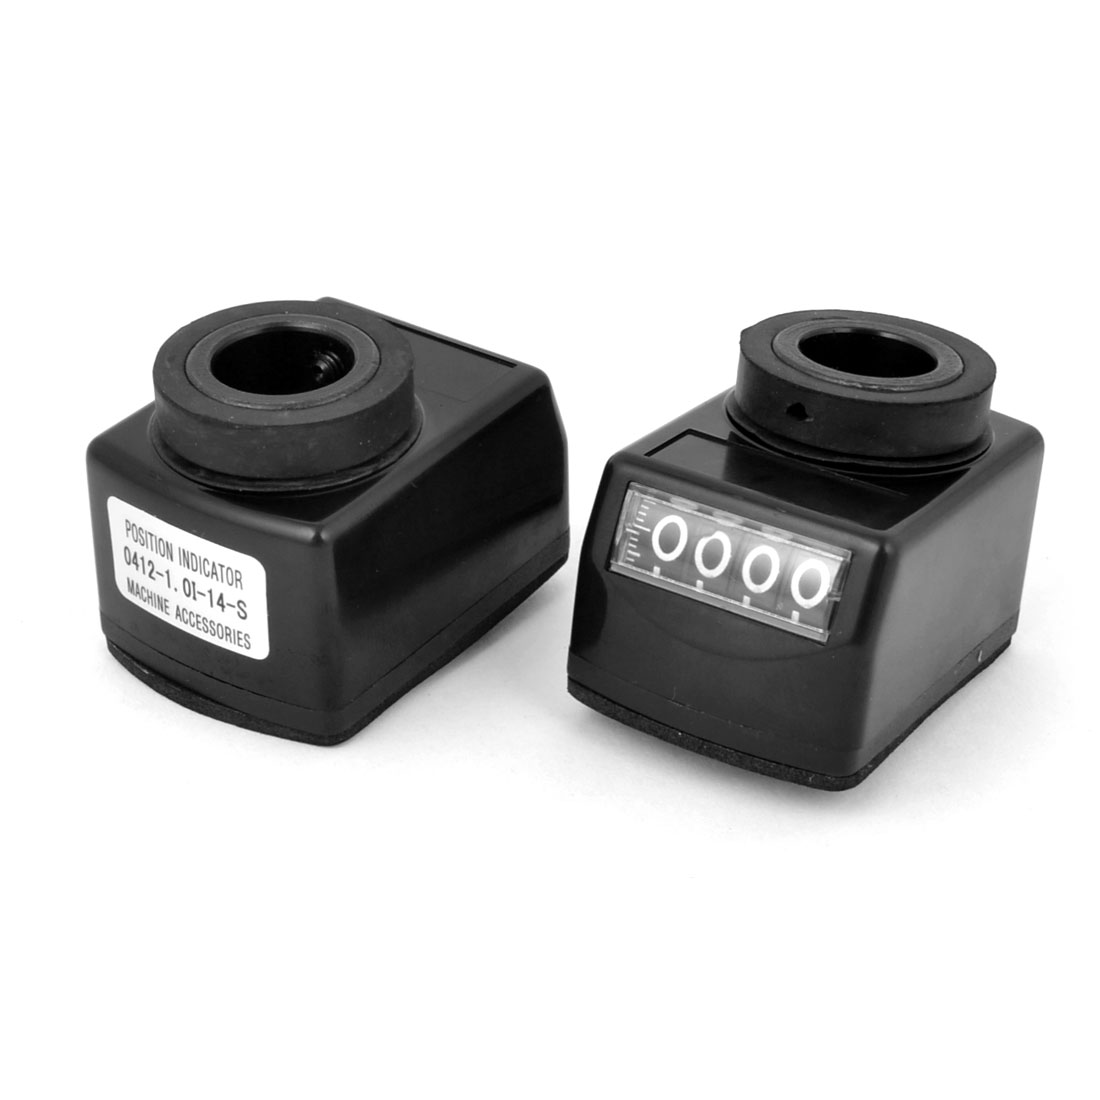 2pcs 1.0mm Axial Pitch Black Plastic Housing 0-99999 Range Digital Indicator